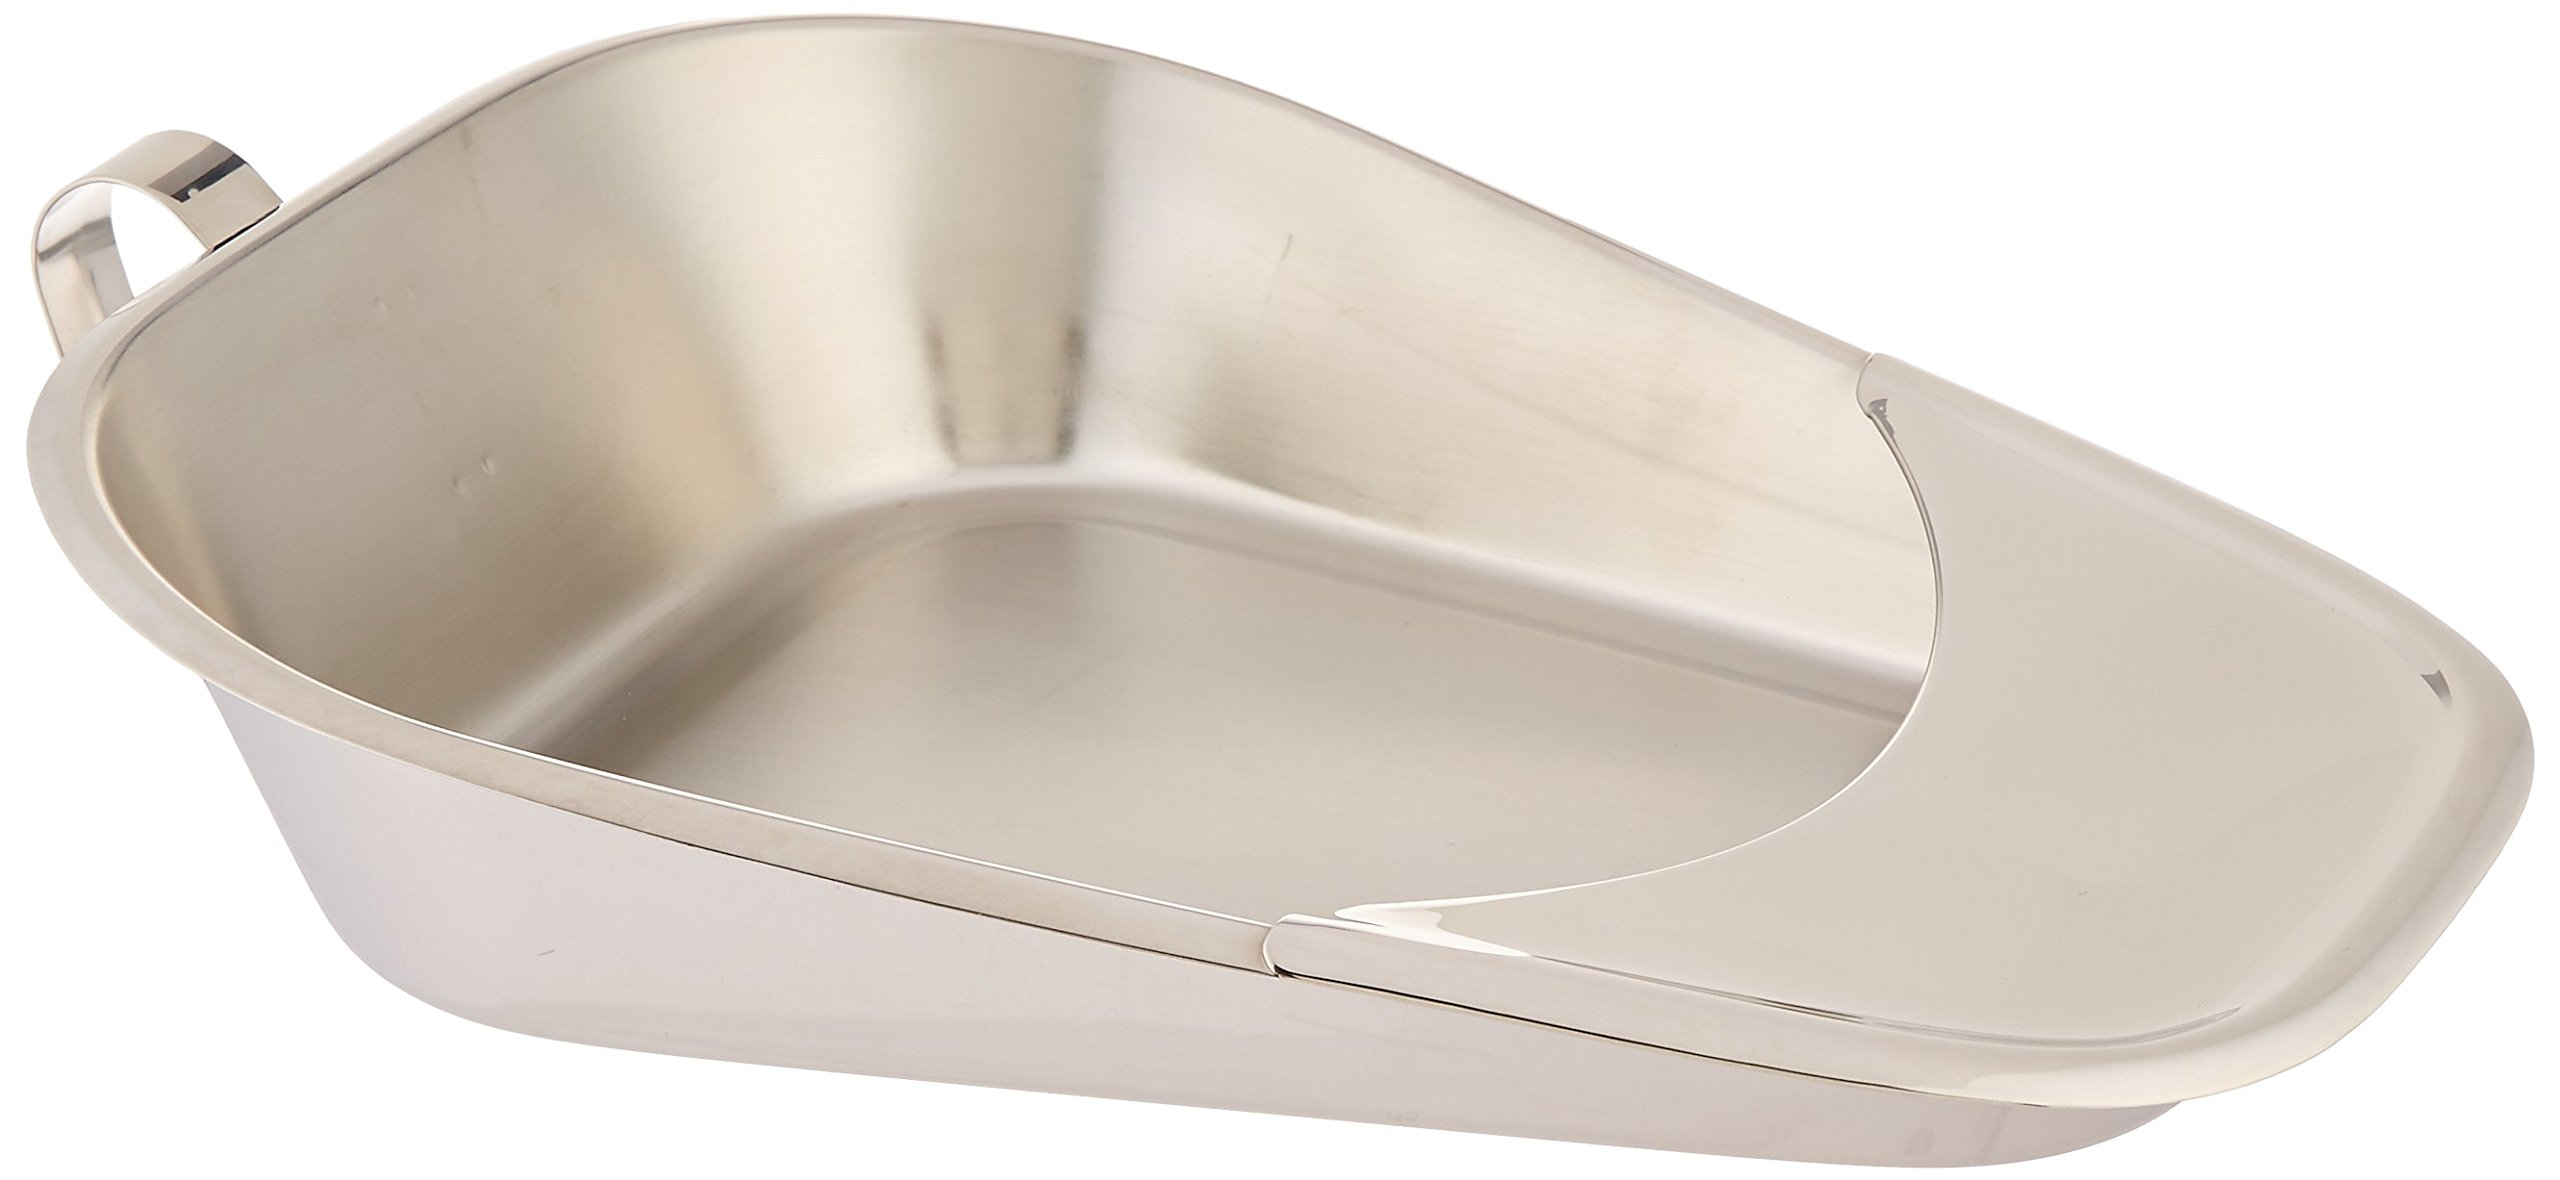 Grafco 3229 Fracture Bed Pan, 3'' Front, 1'' Back, 12-1/2'' Length x 9-1/4'' Width